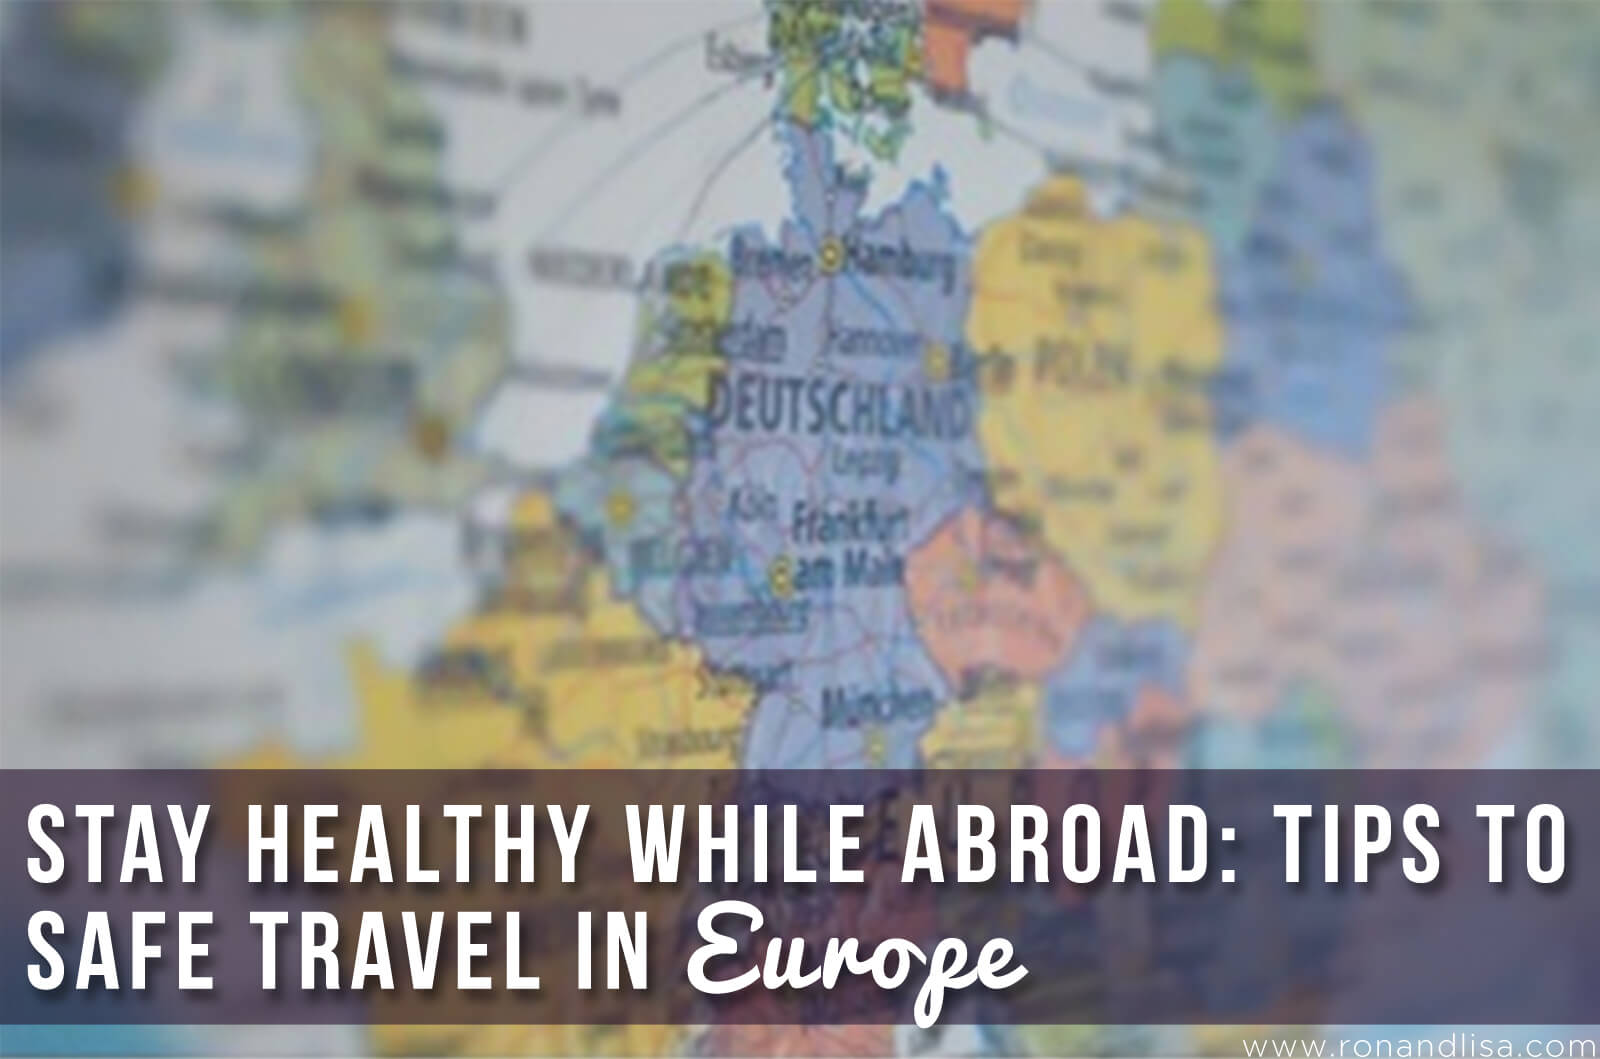 Stay Healthy While Abroad: Tips to Safe Travel in Europe